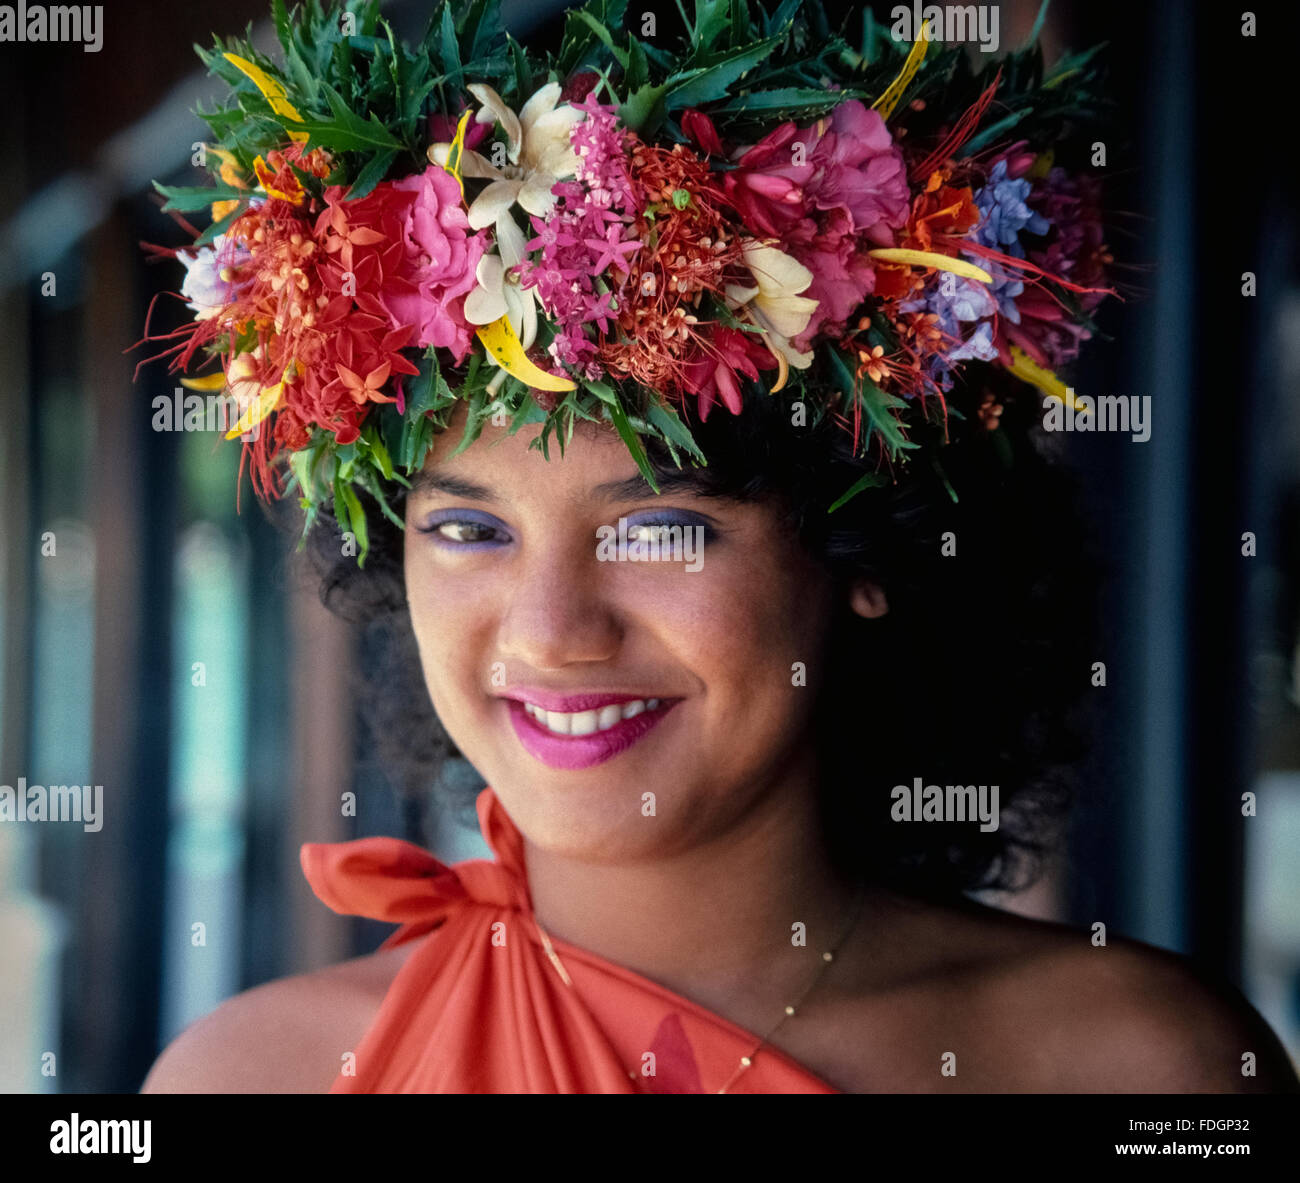 A traditional Tahitian floral crown adds to the beauty of this smiling girl on the island of Moorea in French Polynesia Stock Photo